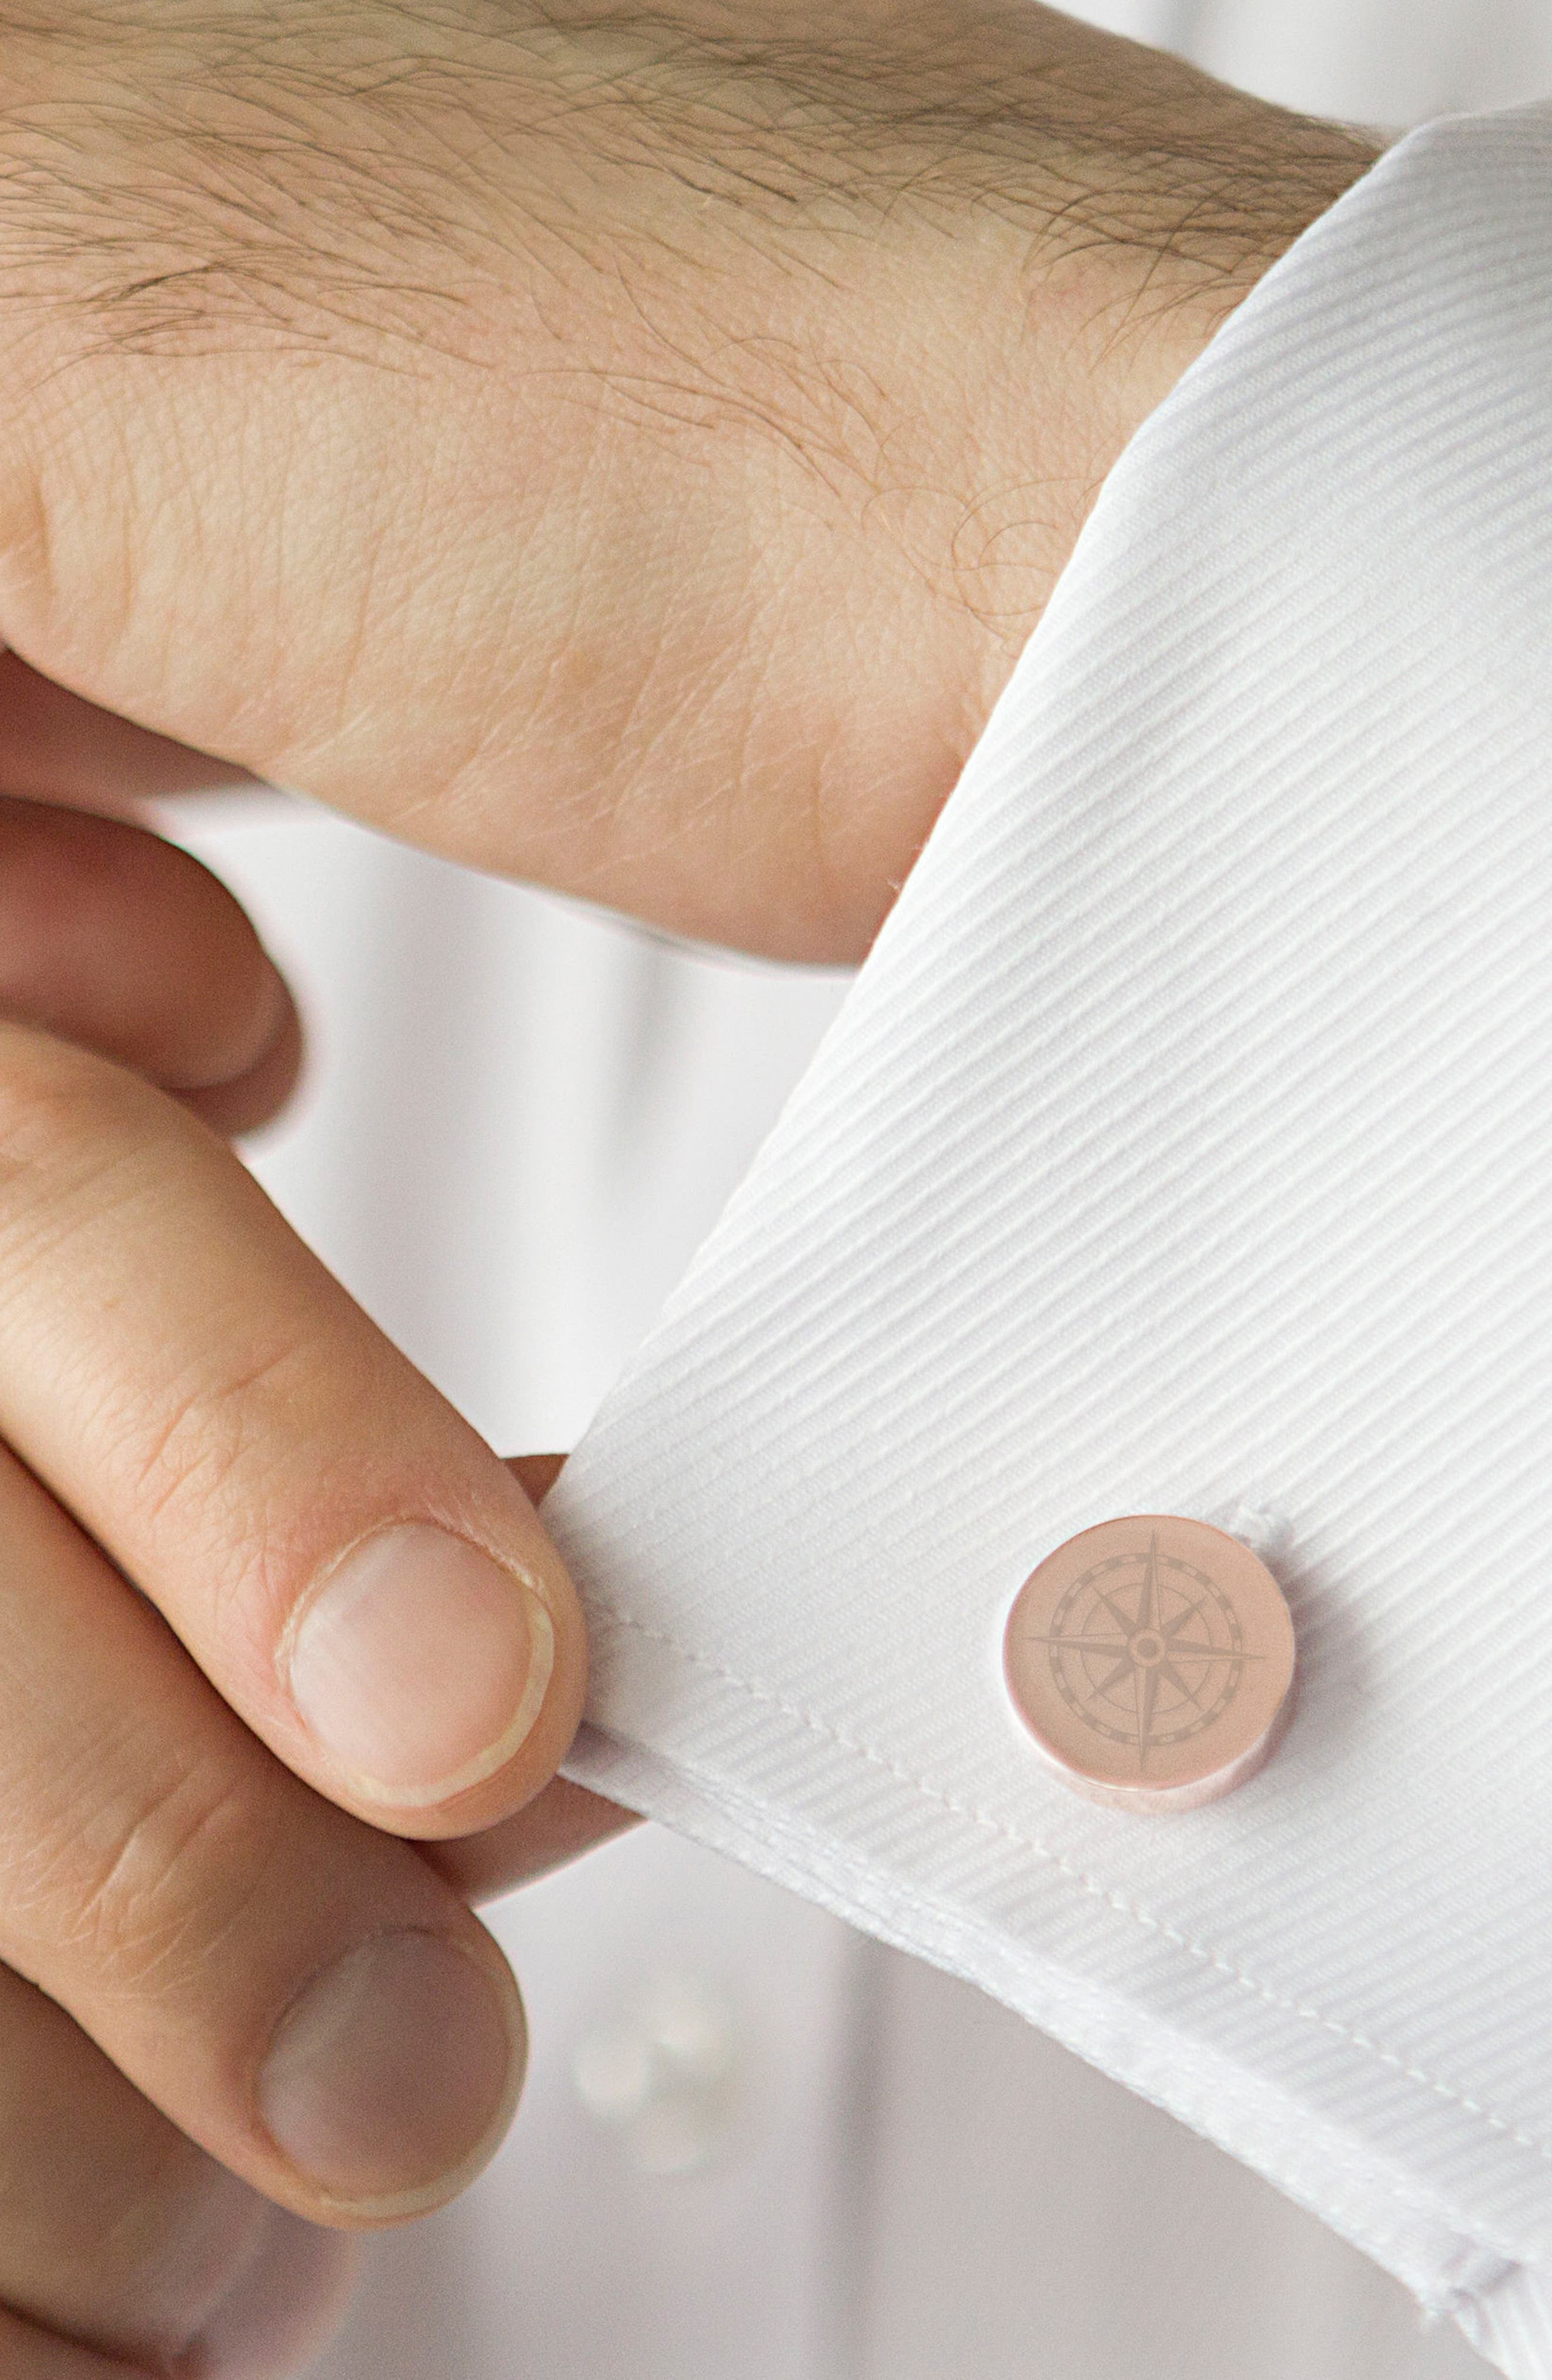 Compass Cuff Links,                             Alternate thumbnail 4, color,                             Rose Gold